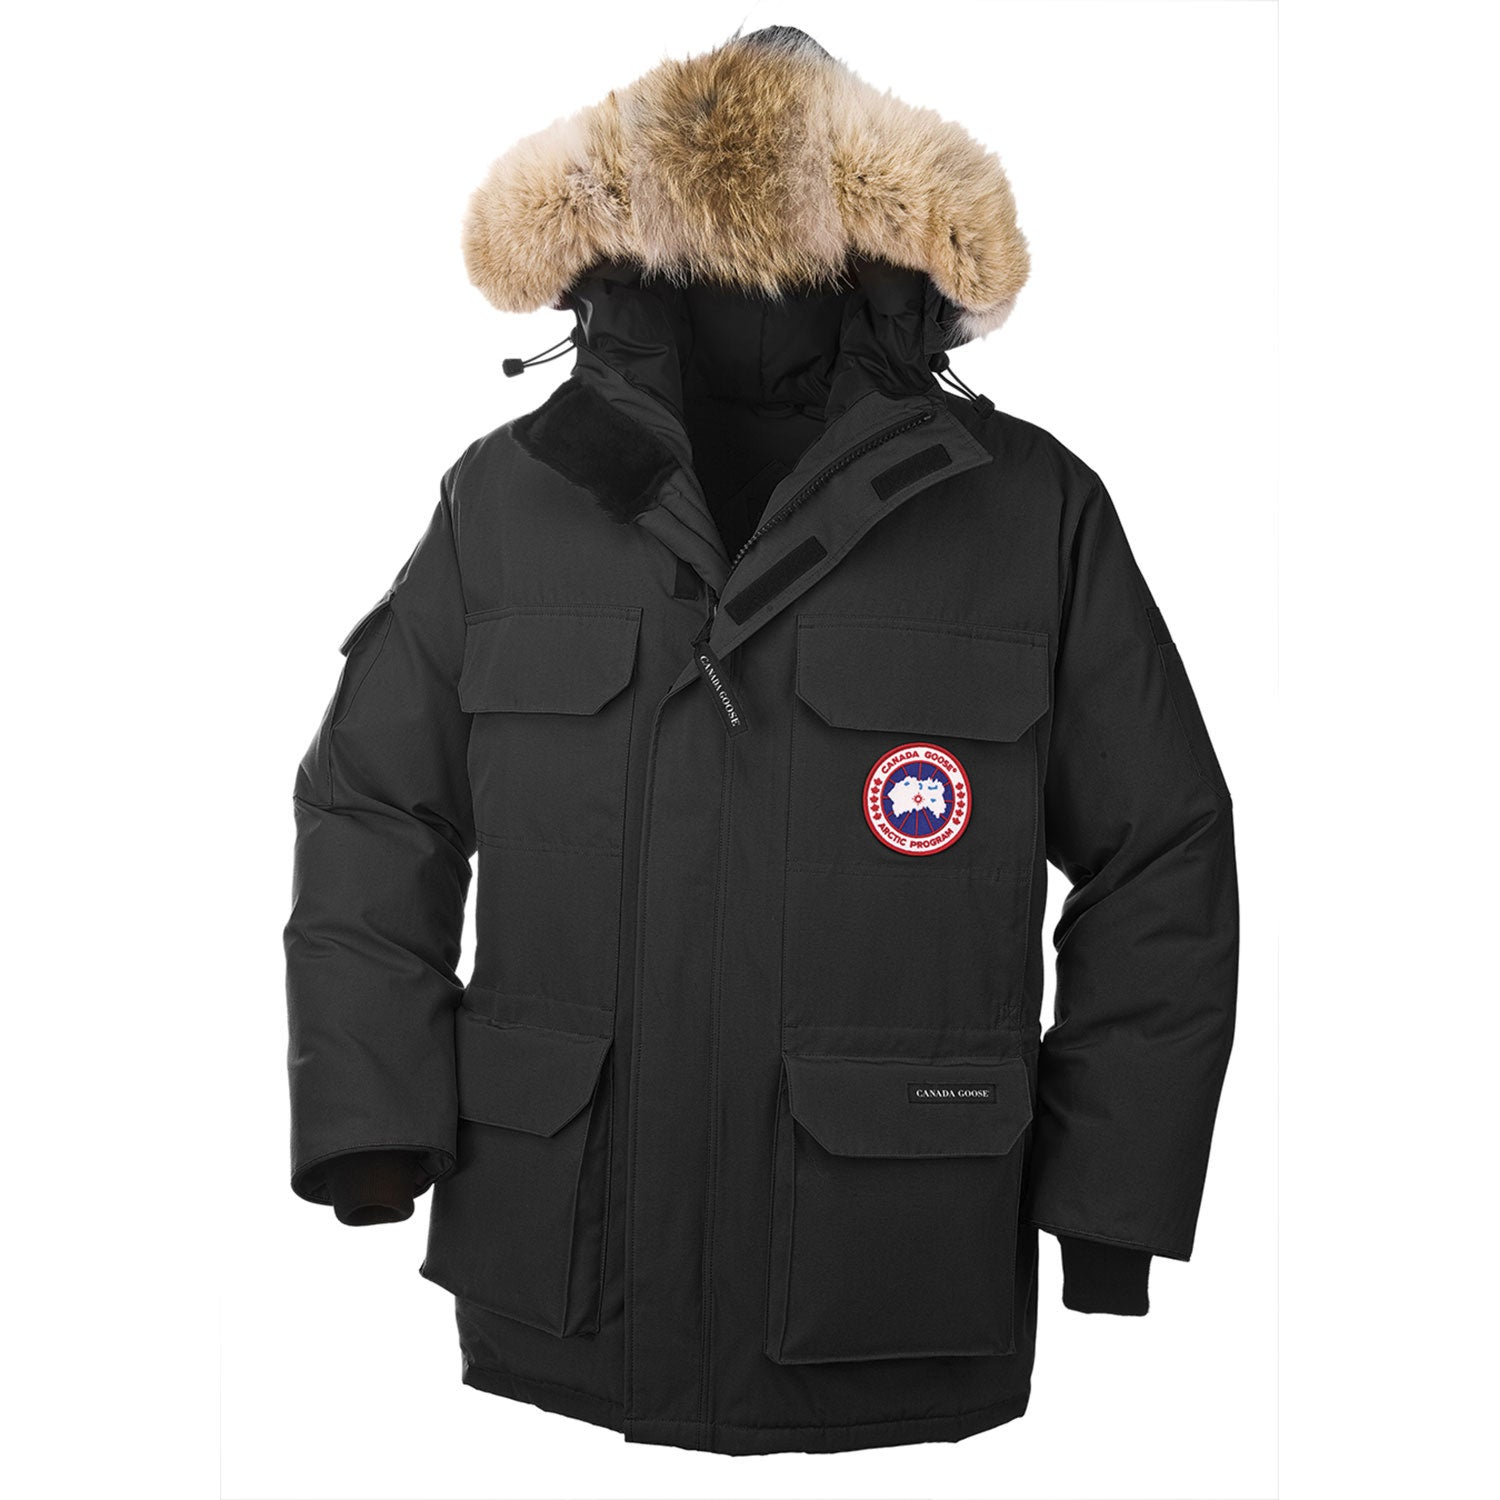 Men's Expedition Parka|-|Parka Expedition Homme Canada Goose